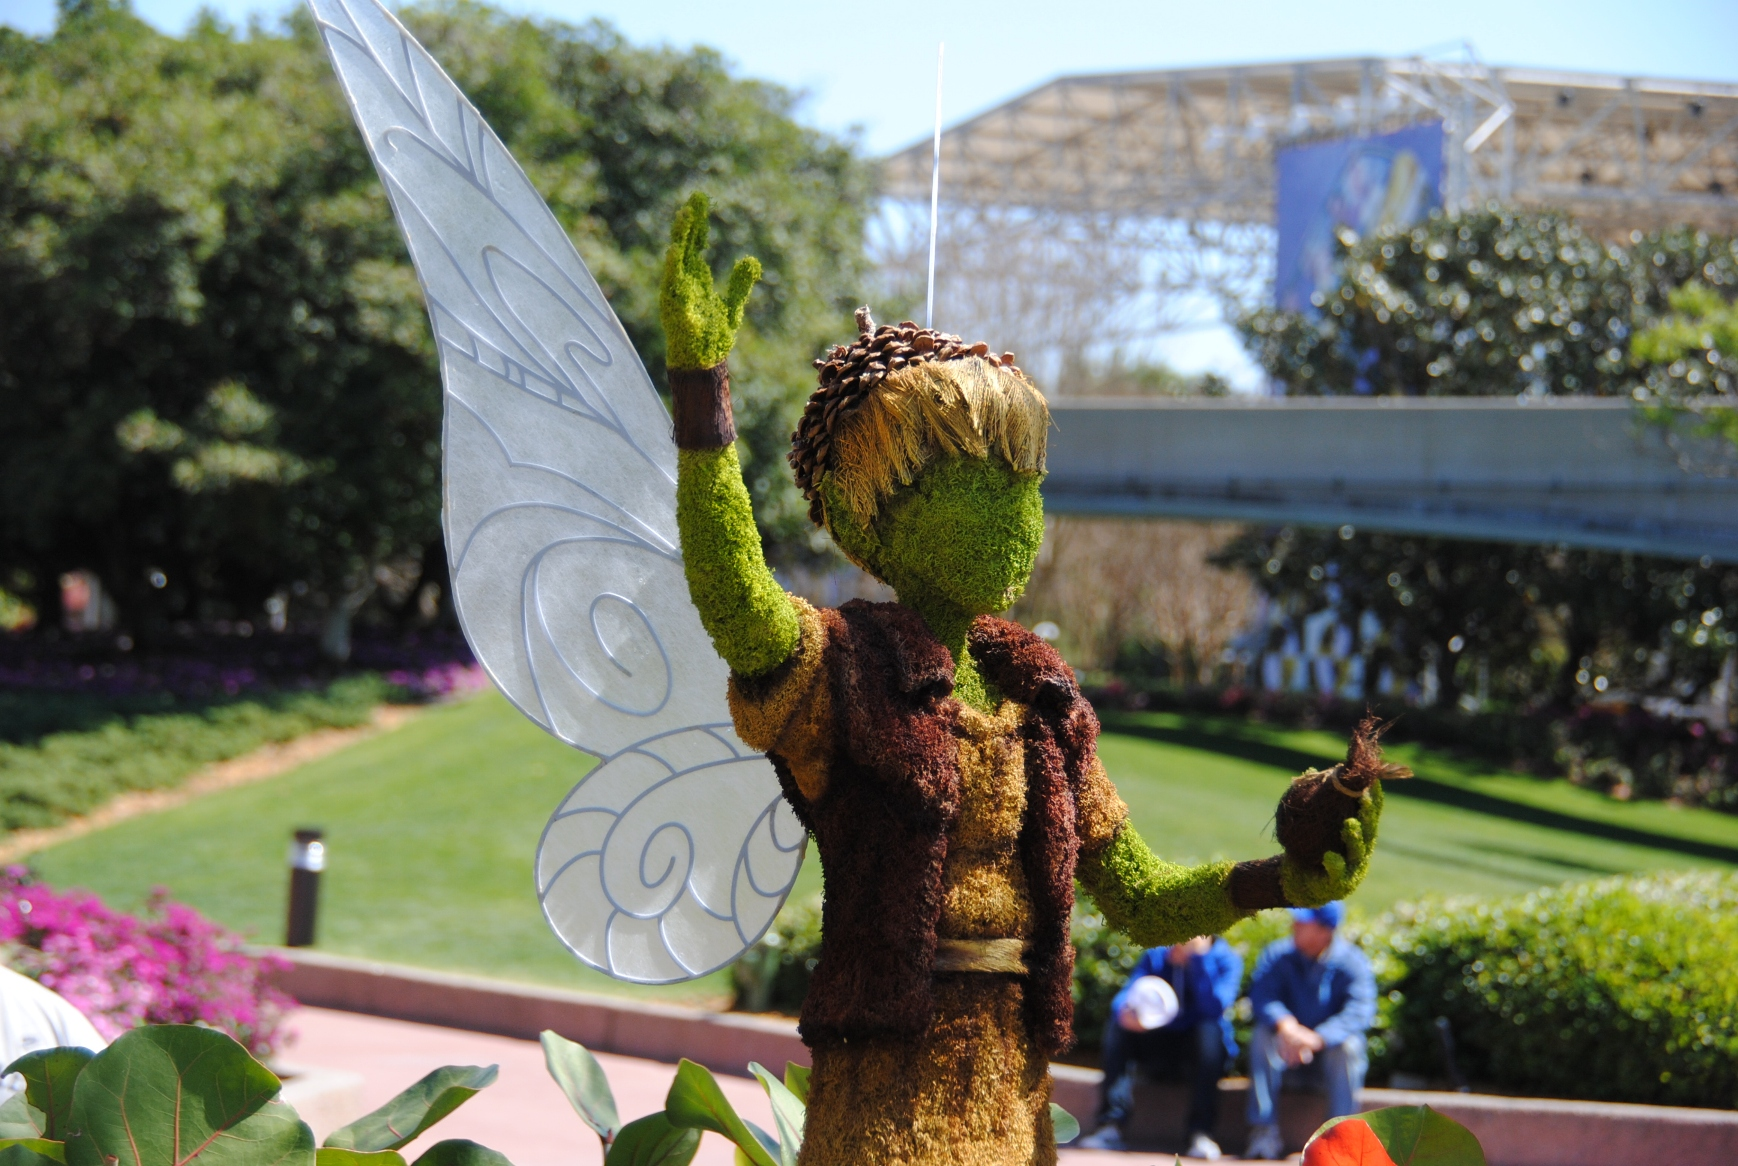 Terence the Dust Fairy